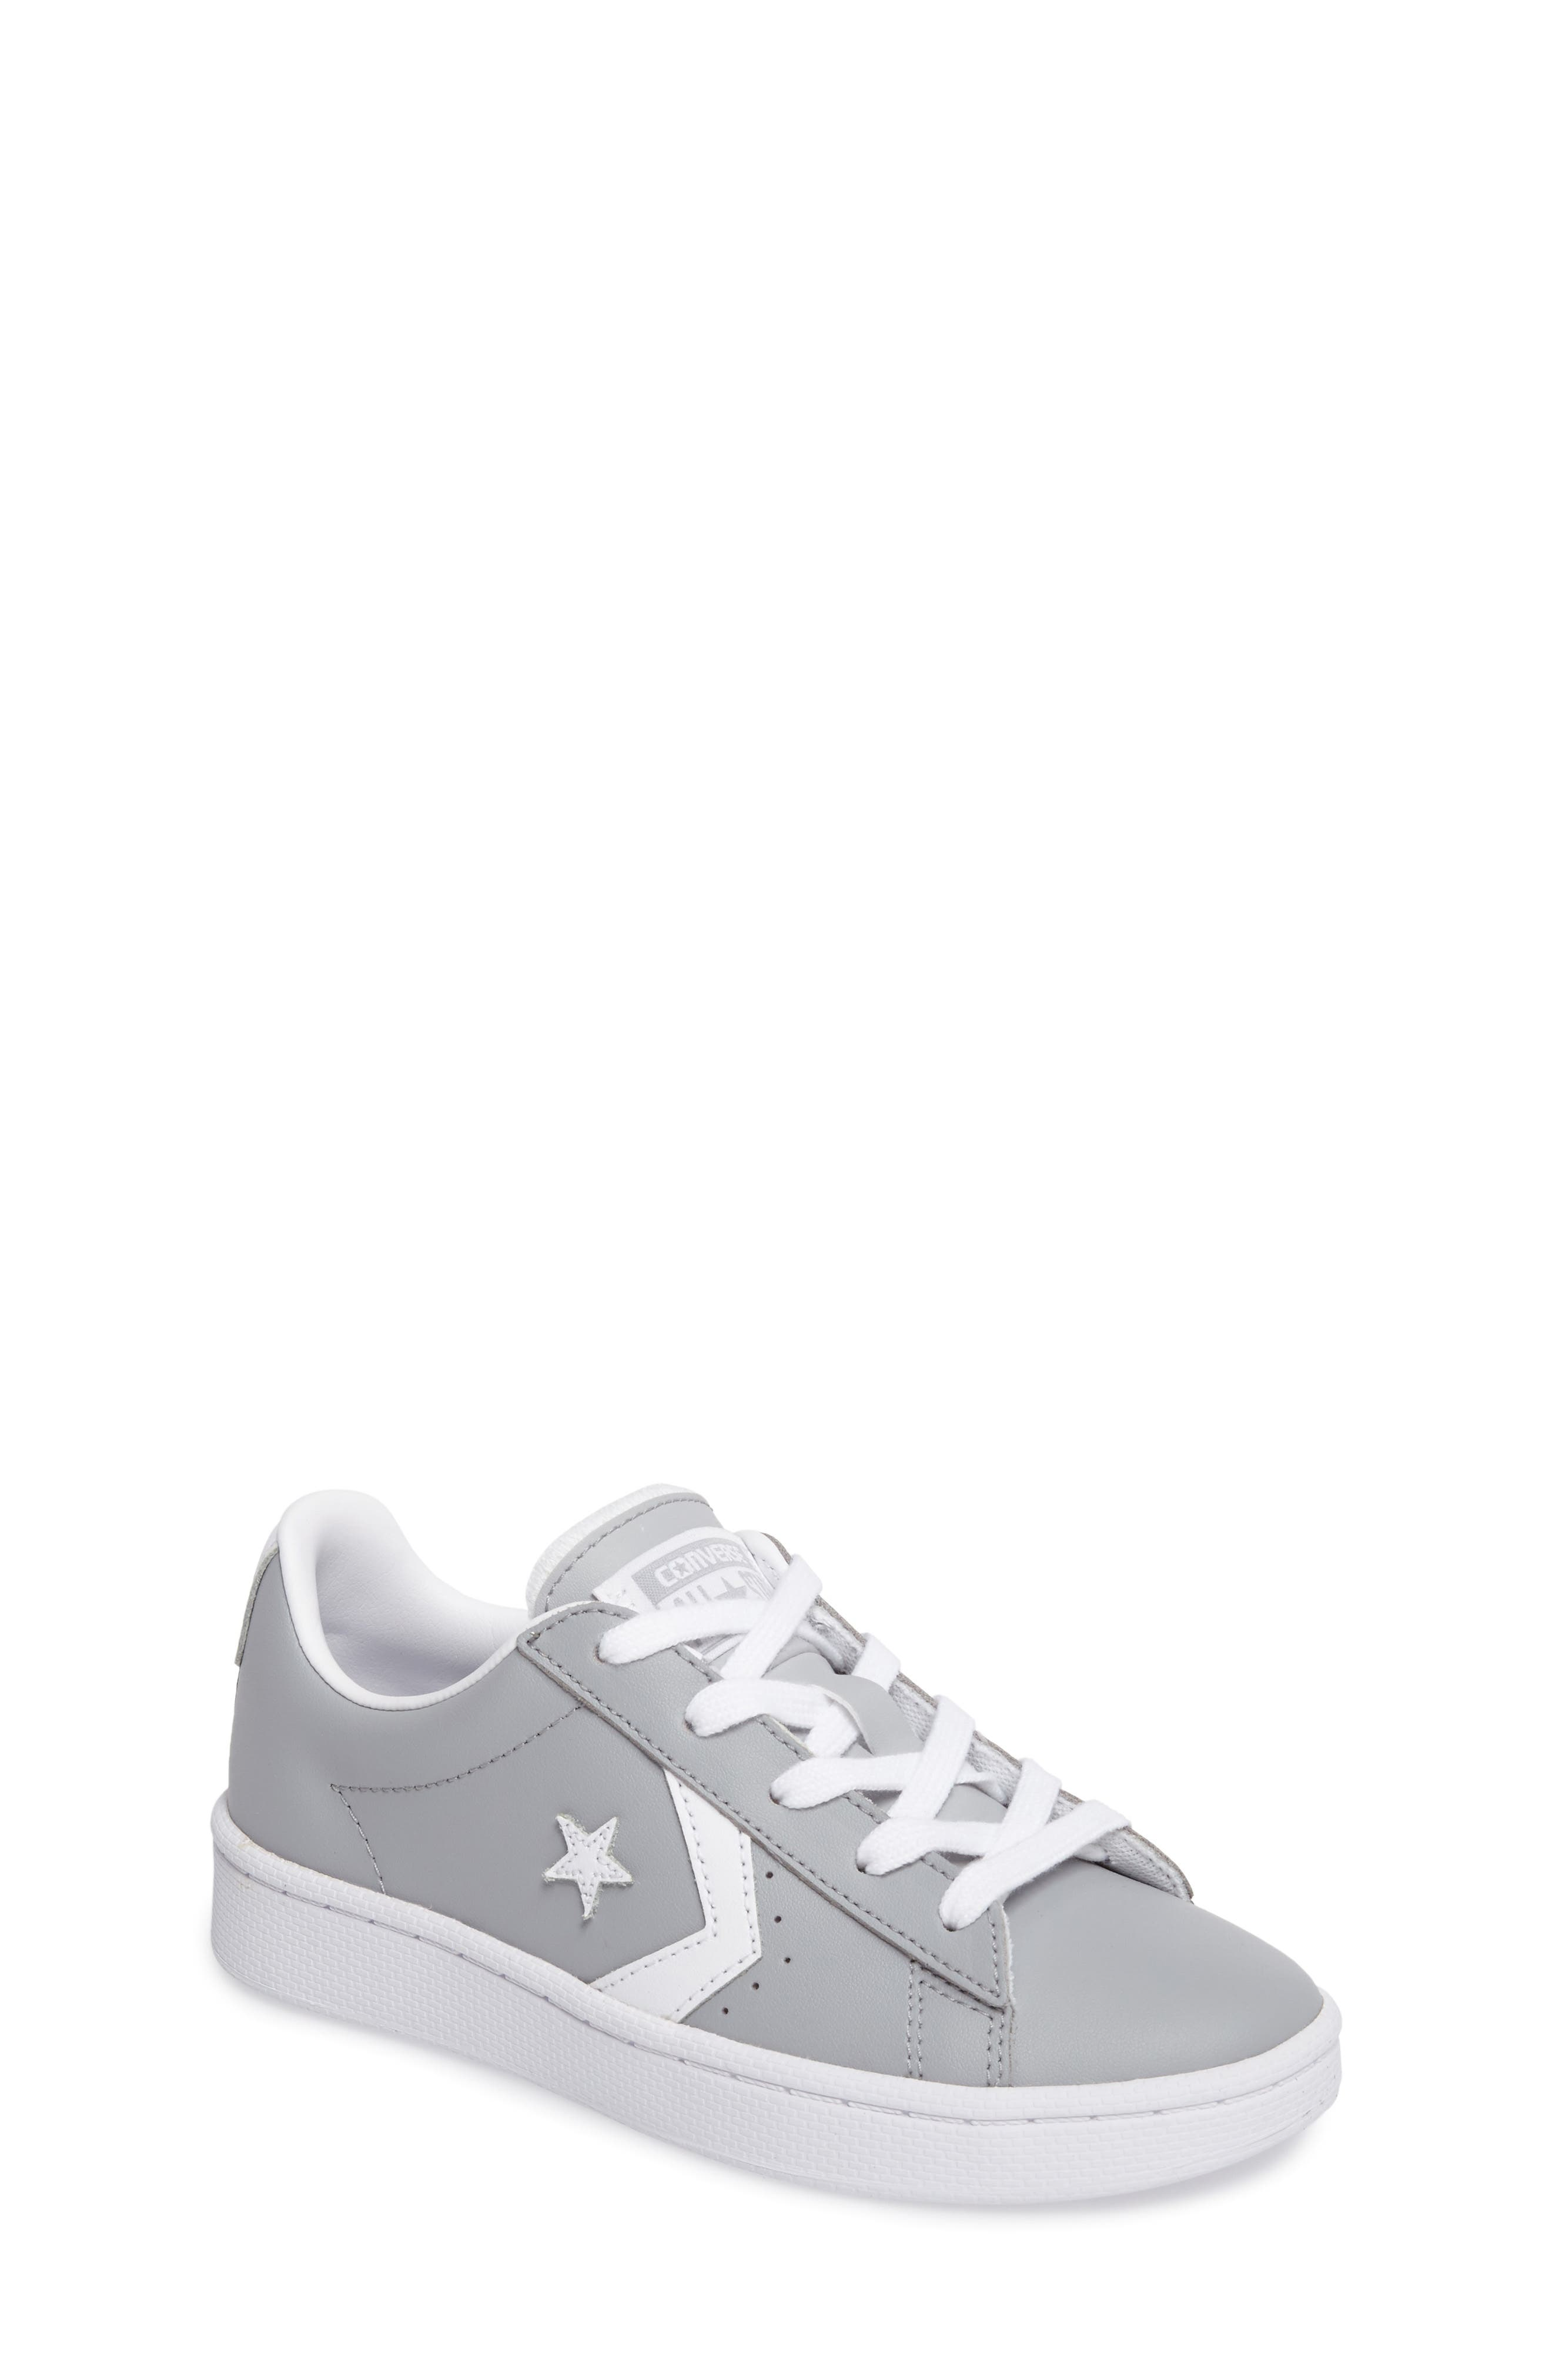 All Star<sup>®</sup> Pro Leather Low Top Sneaker,                         Main,                         color, Wolf Grey